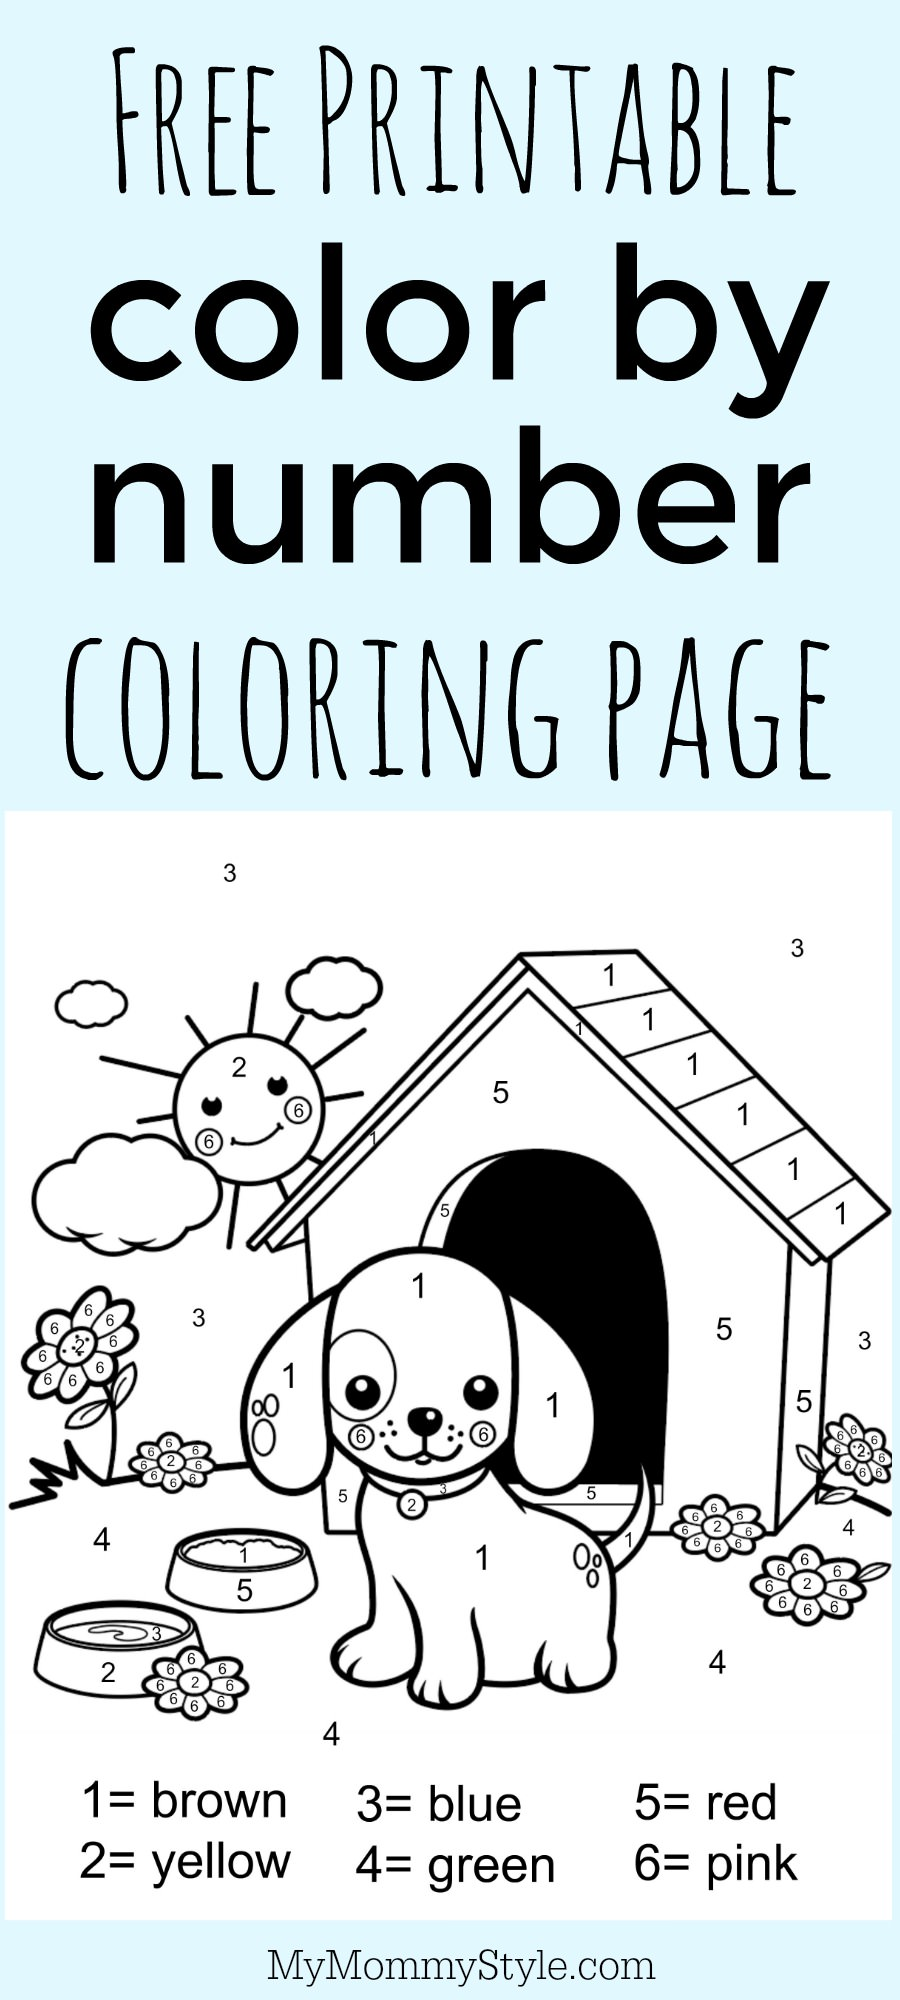 number coloring pages free printable - photo#44